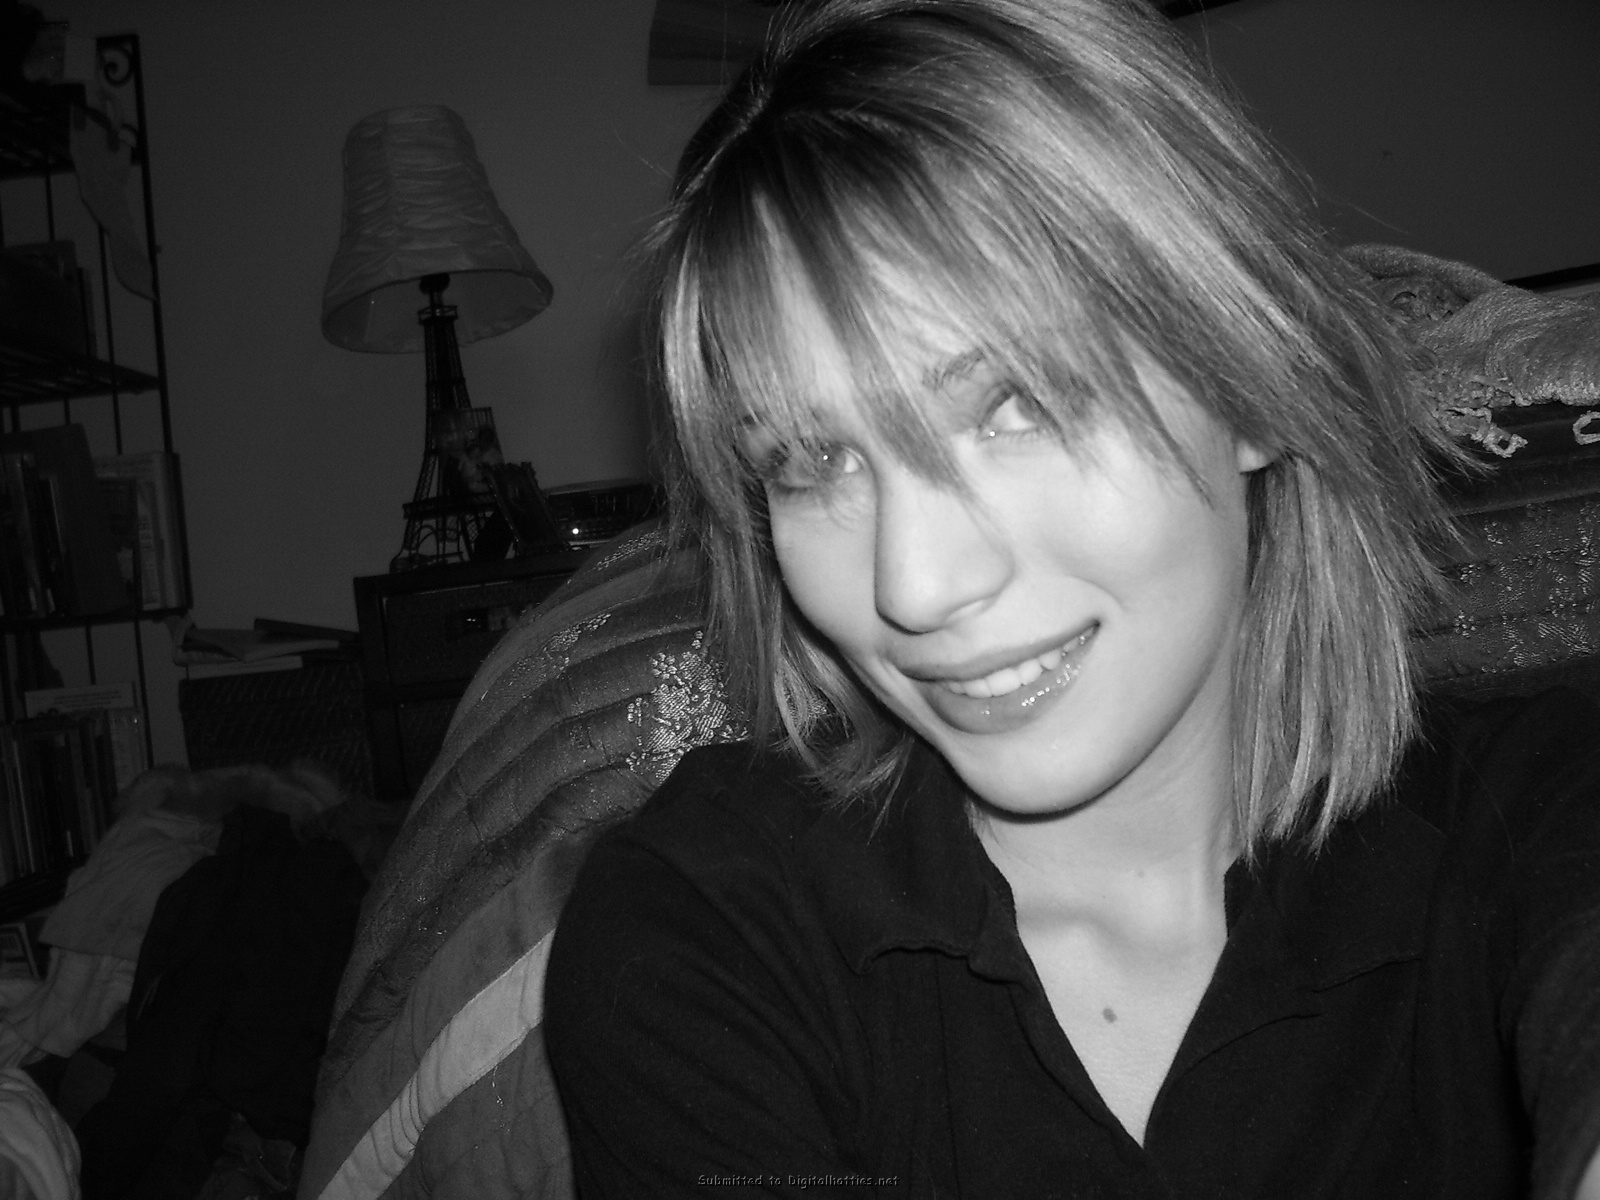 dating sites for teens 14 18 12 16 2